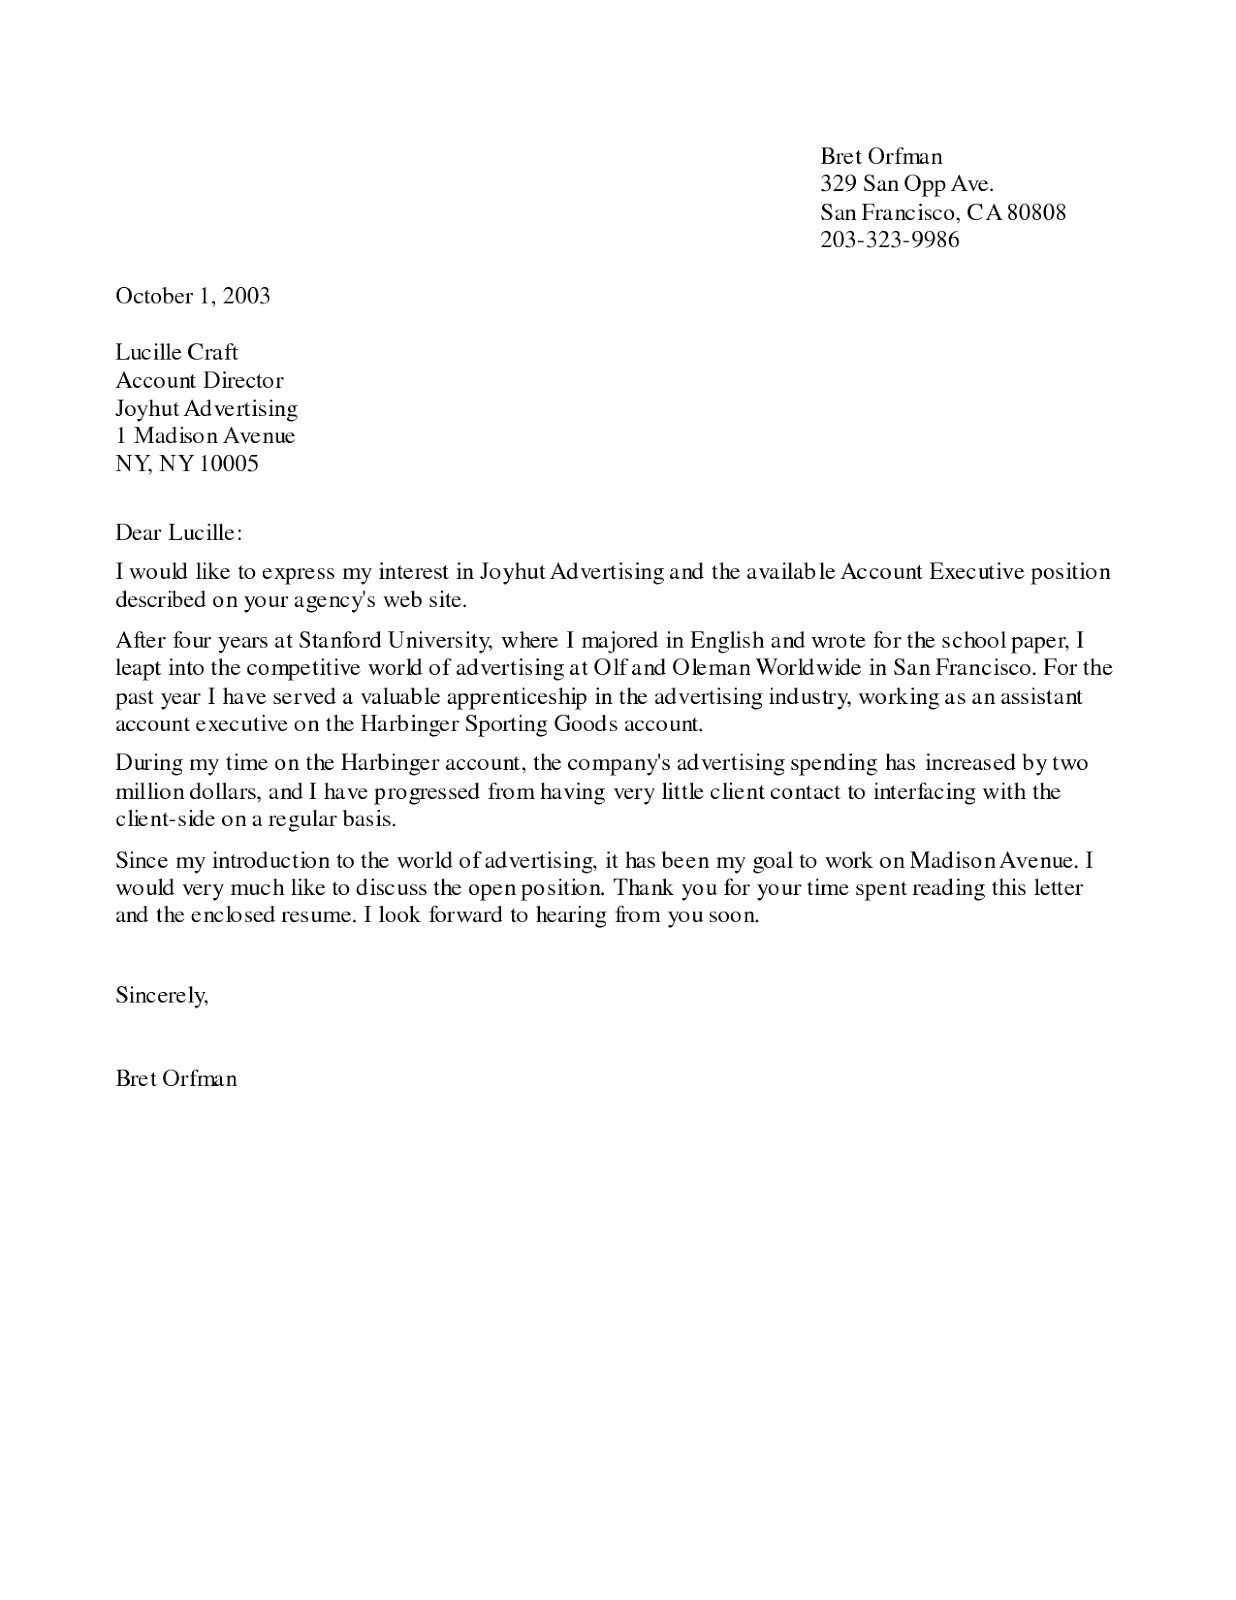 cover letter sample for advertising account executive